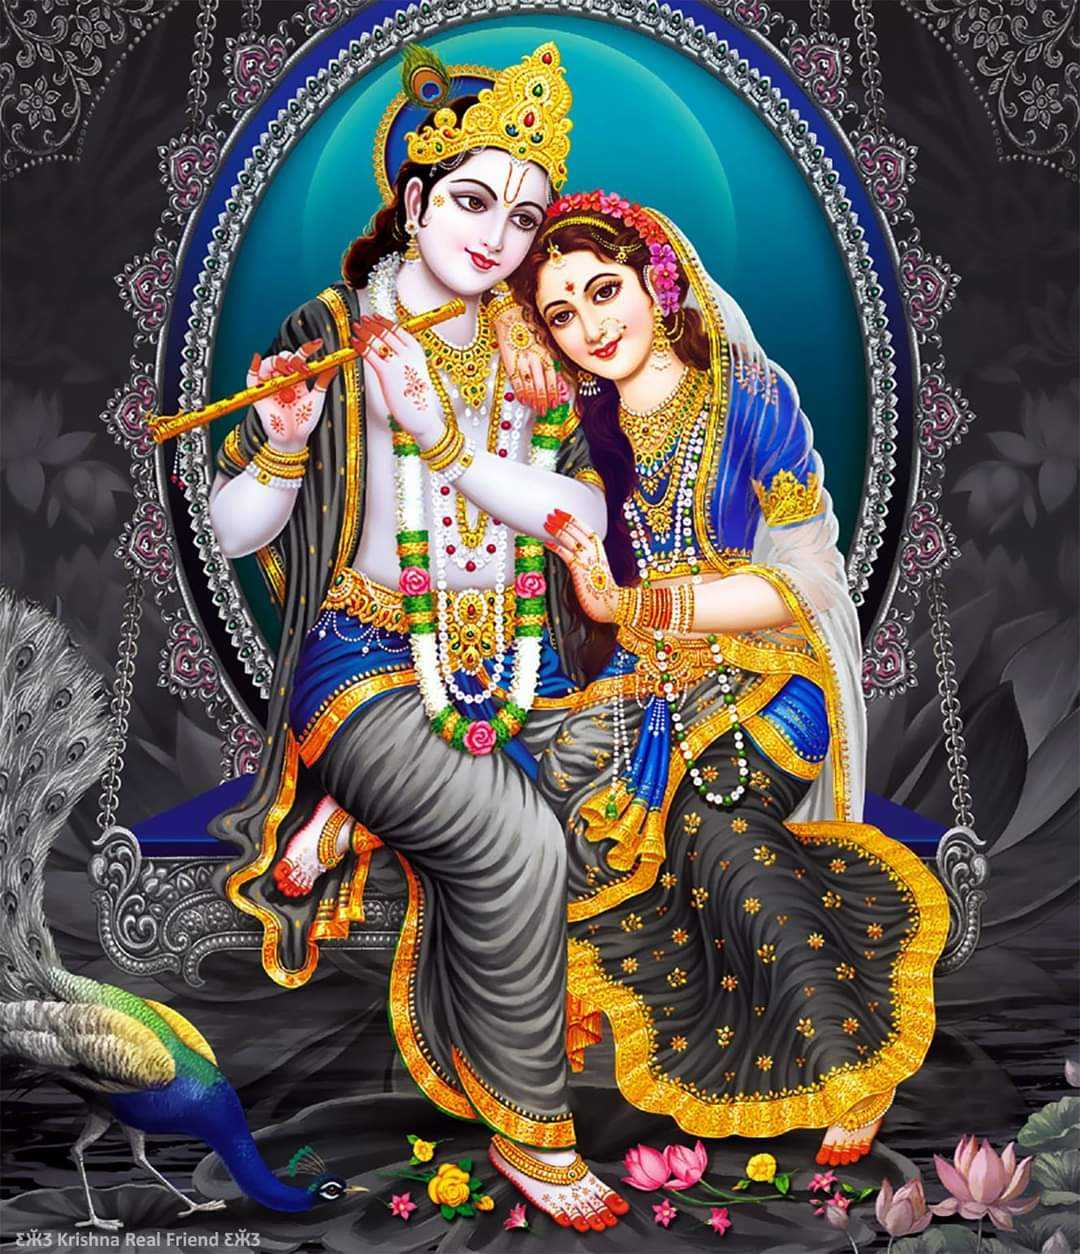 Lord krishna Bring Divine Love Wallpaper with Radha Rani - Lord Krishna with Radha Rani Beautiful Couple Wallpaper HD Free Download. Divine lovers radha krishna hd wallpaper photo image download free for mobile devices.